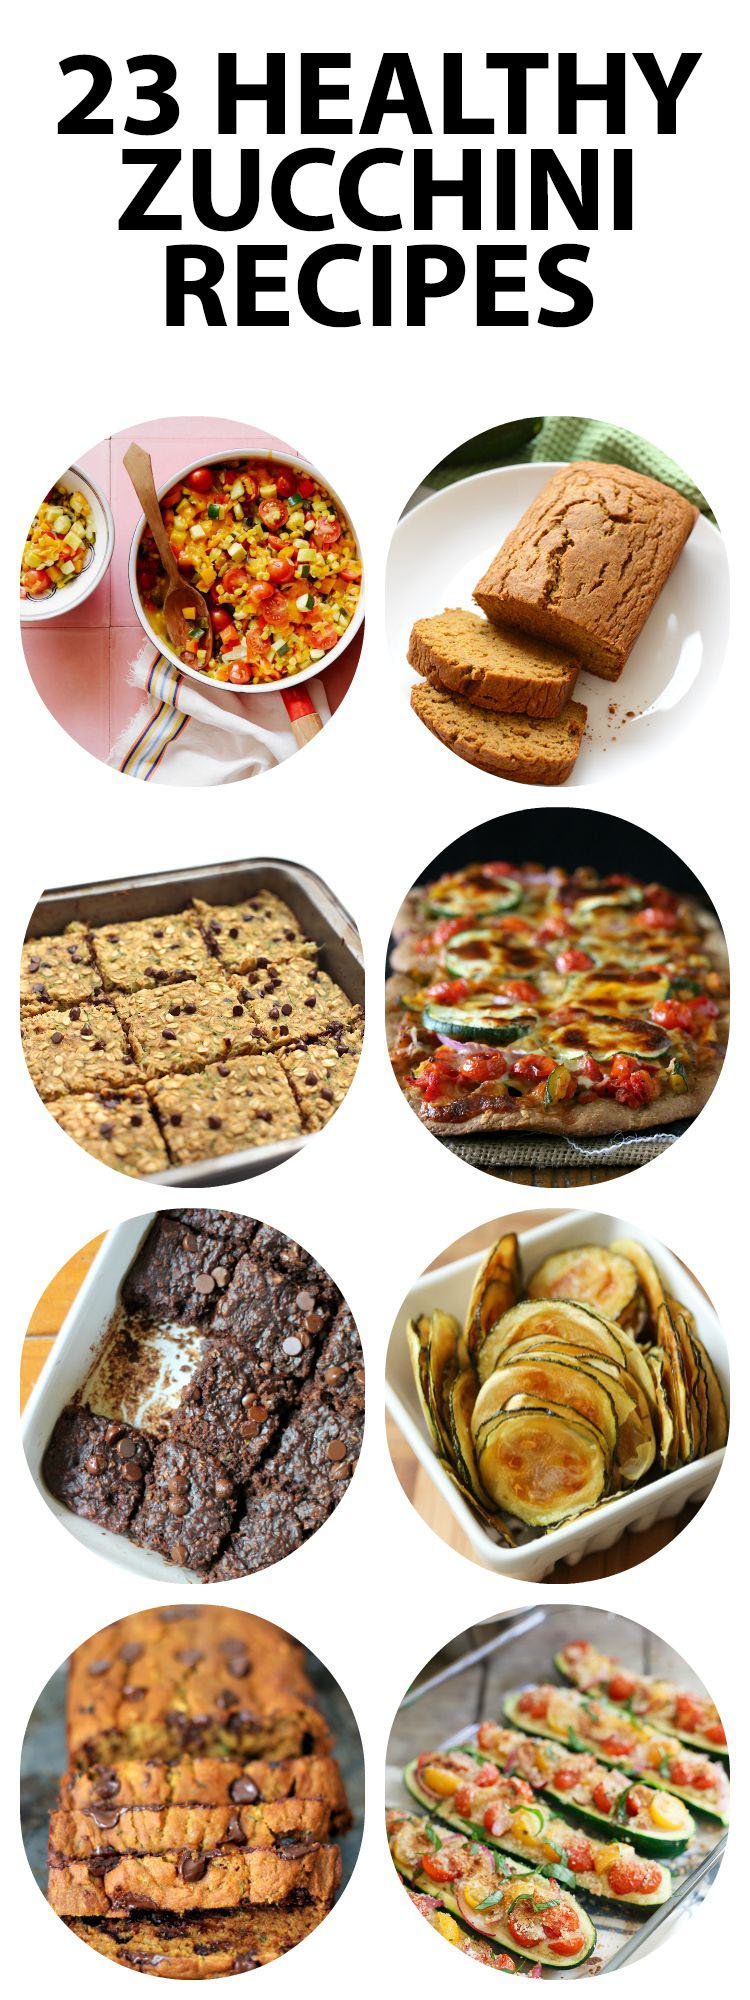 Healthy Zucchini Recipes to try! From cookies and bread to pizza & chips. #healthy #zucchini